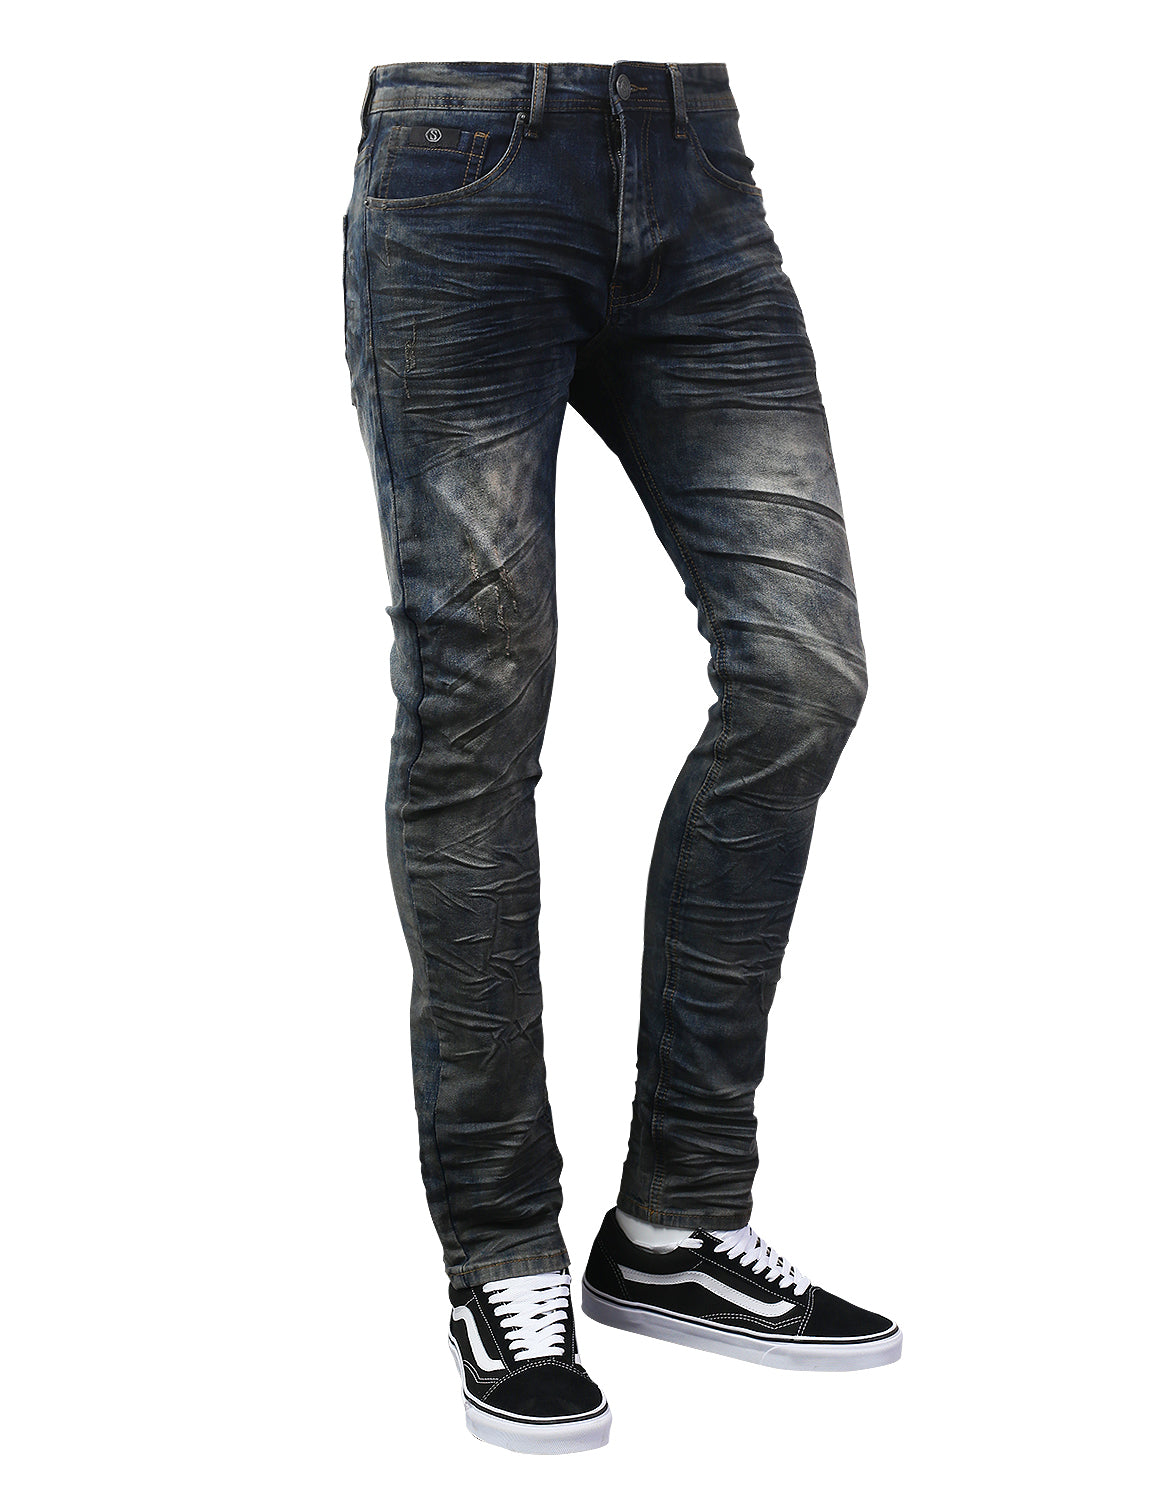 BKINDIGO Basic Washed Denim Jeans - URBANCREWS